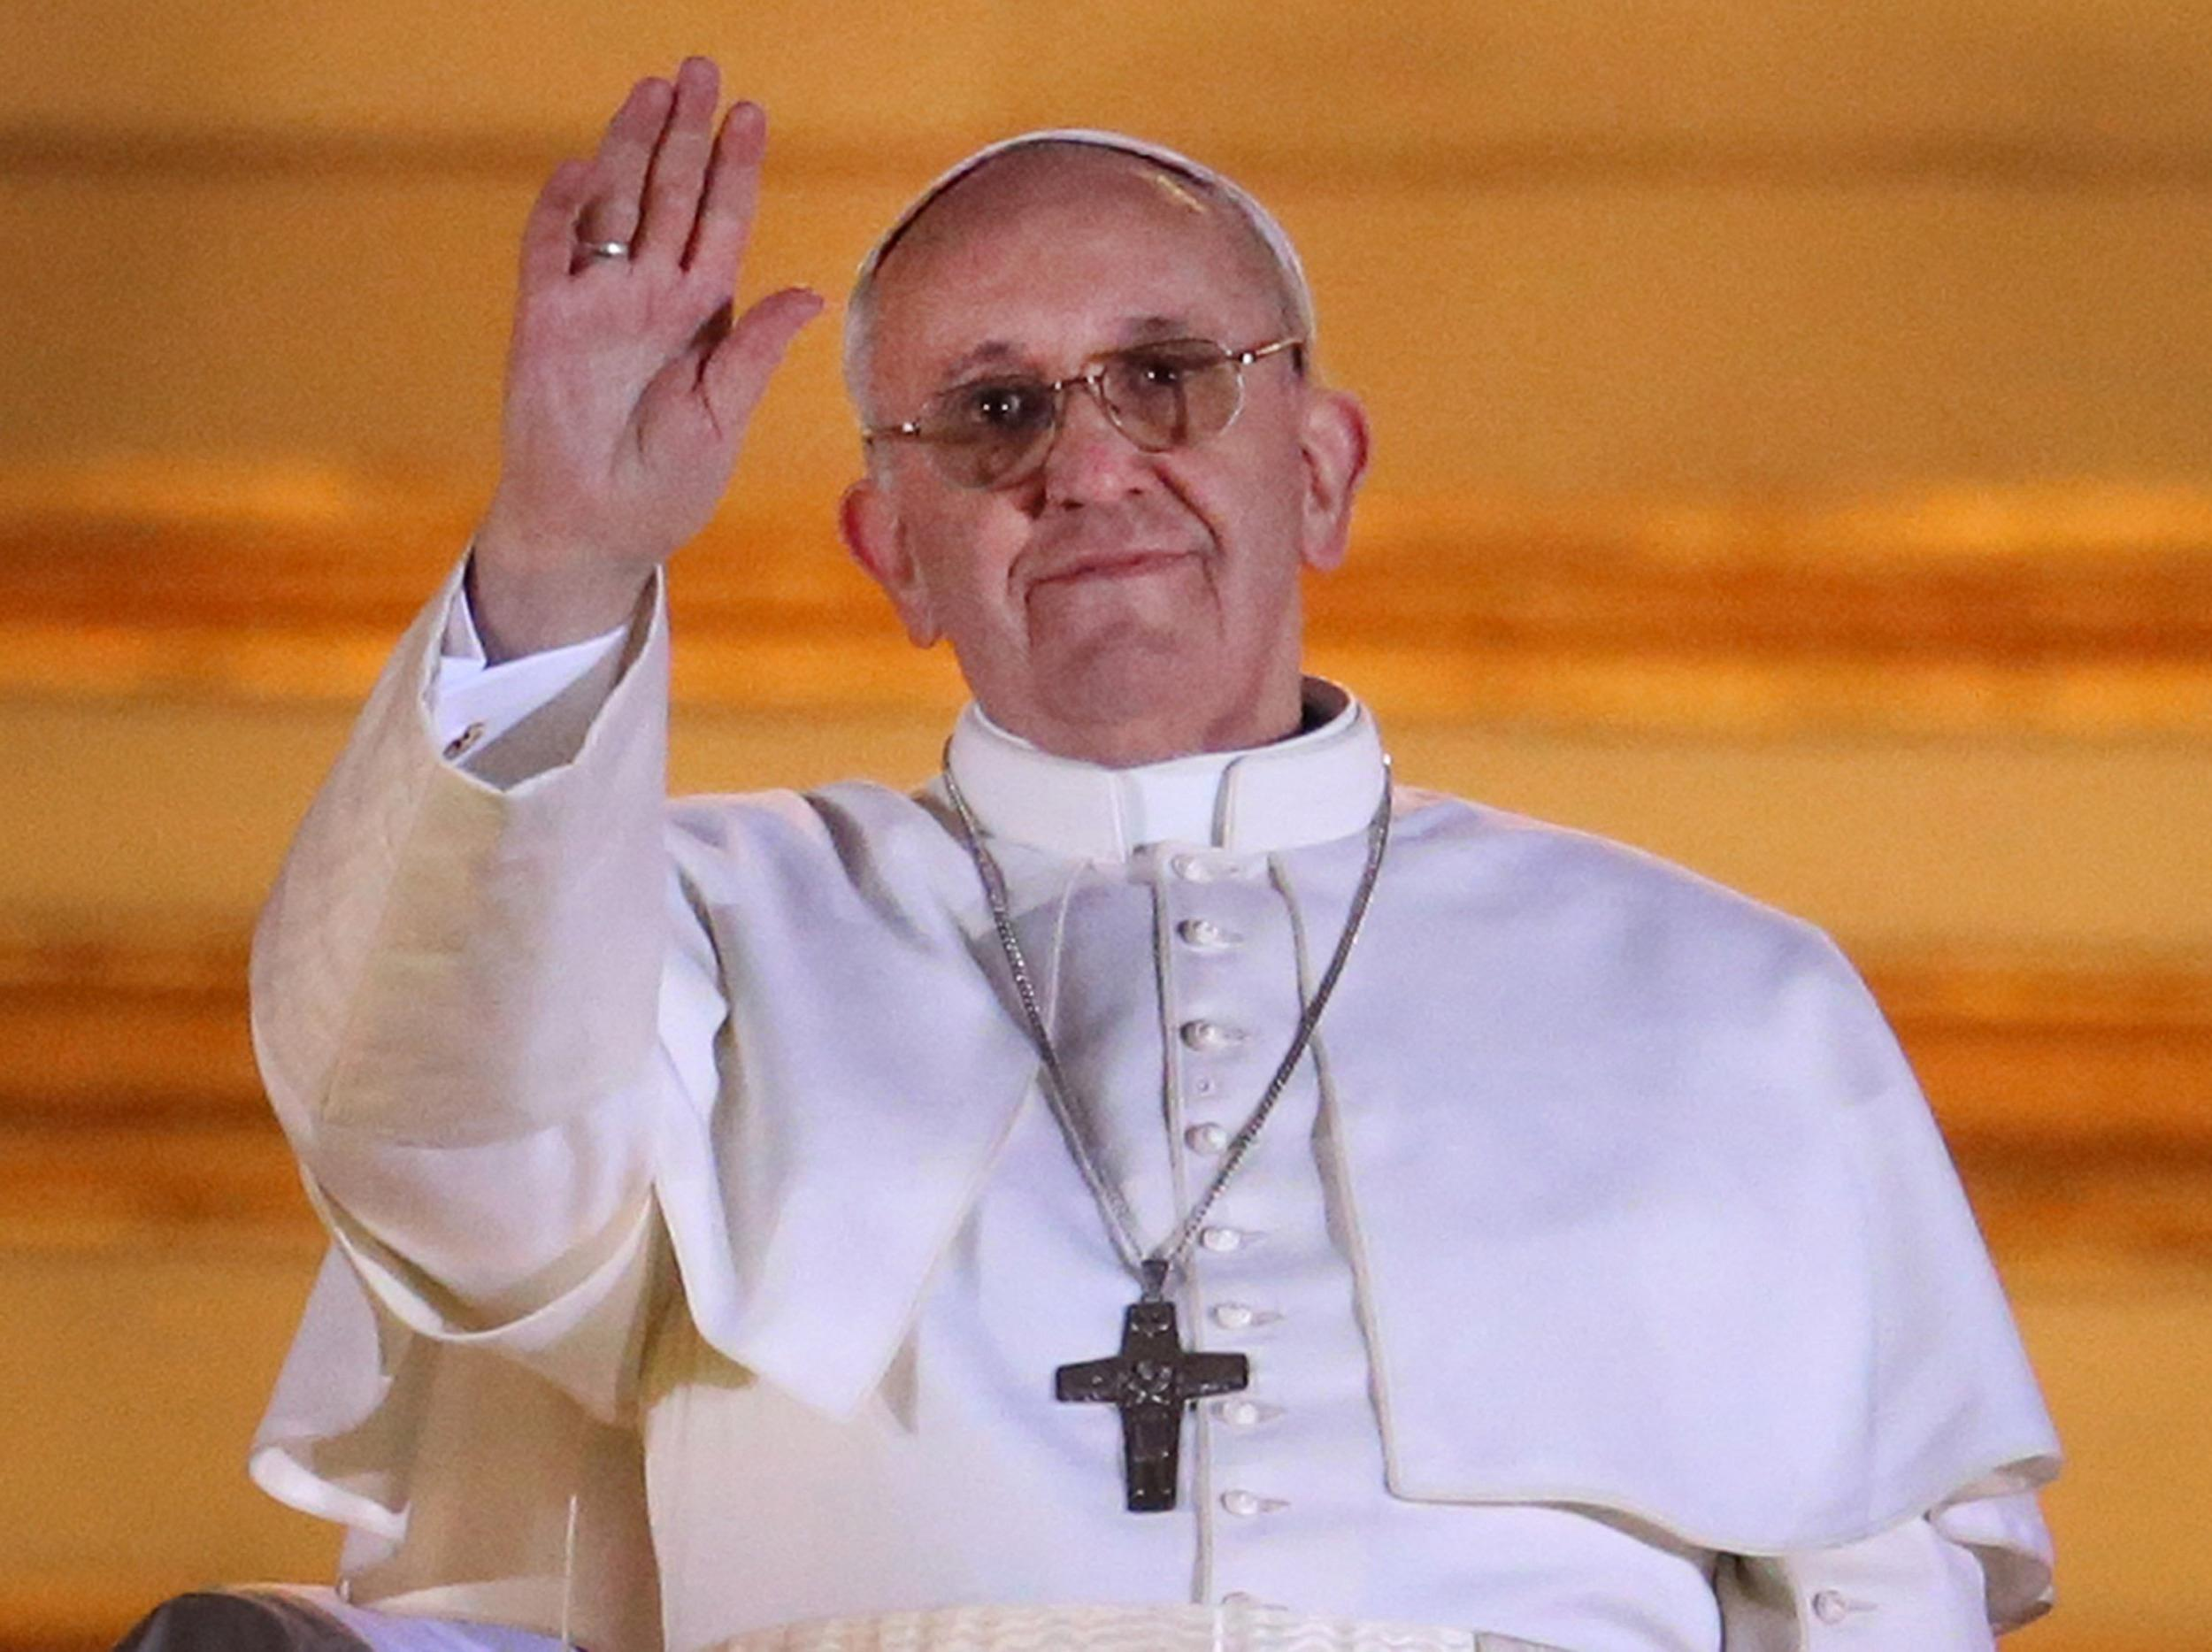 Image: (FILE) Pope Francis Named 2013 Time Magazine Person of the Year The Conclave Of Cardinals Have Elected A New Pope To Lead The World's Catholics